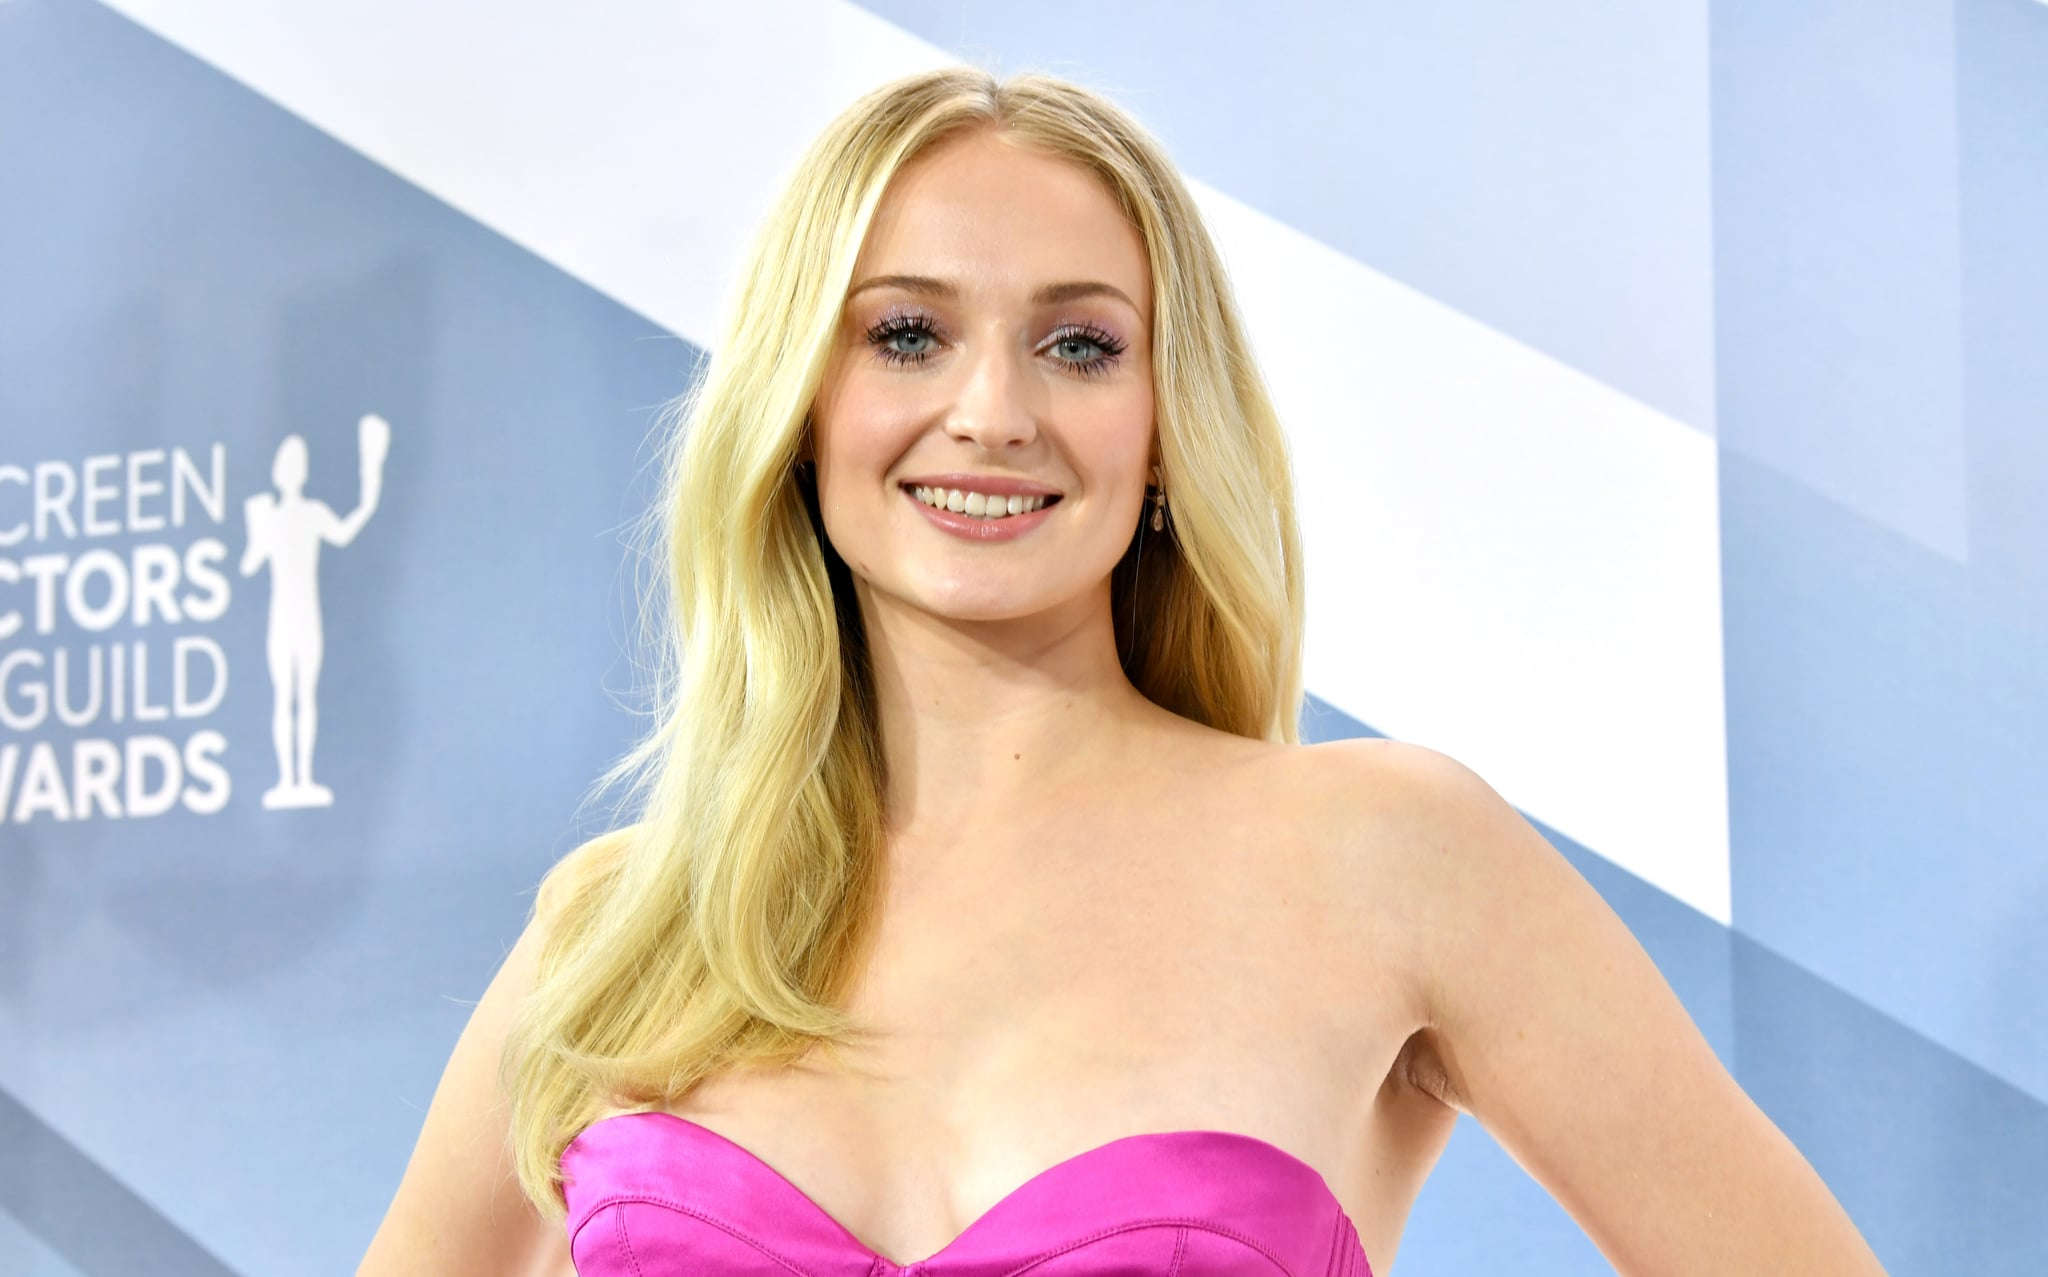 LOS ANGELES, CALIFORNIA - JANUARY 19: English actress Sophie Turner attends the 26th Annual Screen Actors Guild Awards at The Shrine Auditorium on January 19, 2020 in Los Angeles, California. (Photo by Amy Sussman/WireImage)